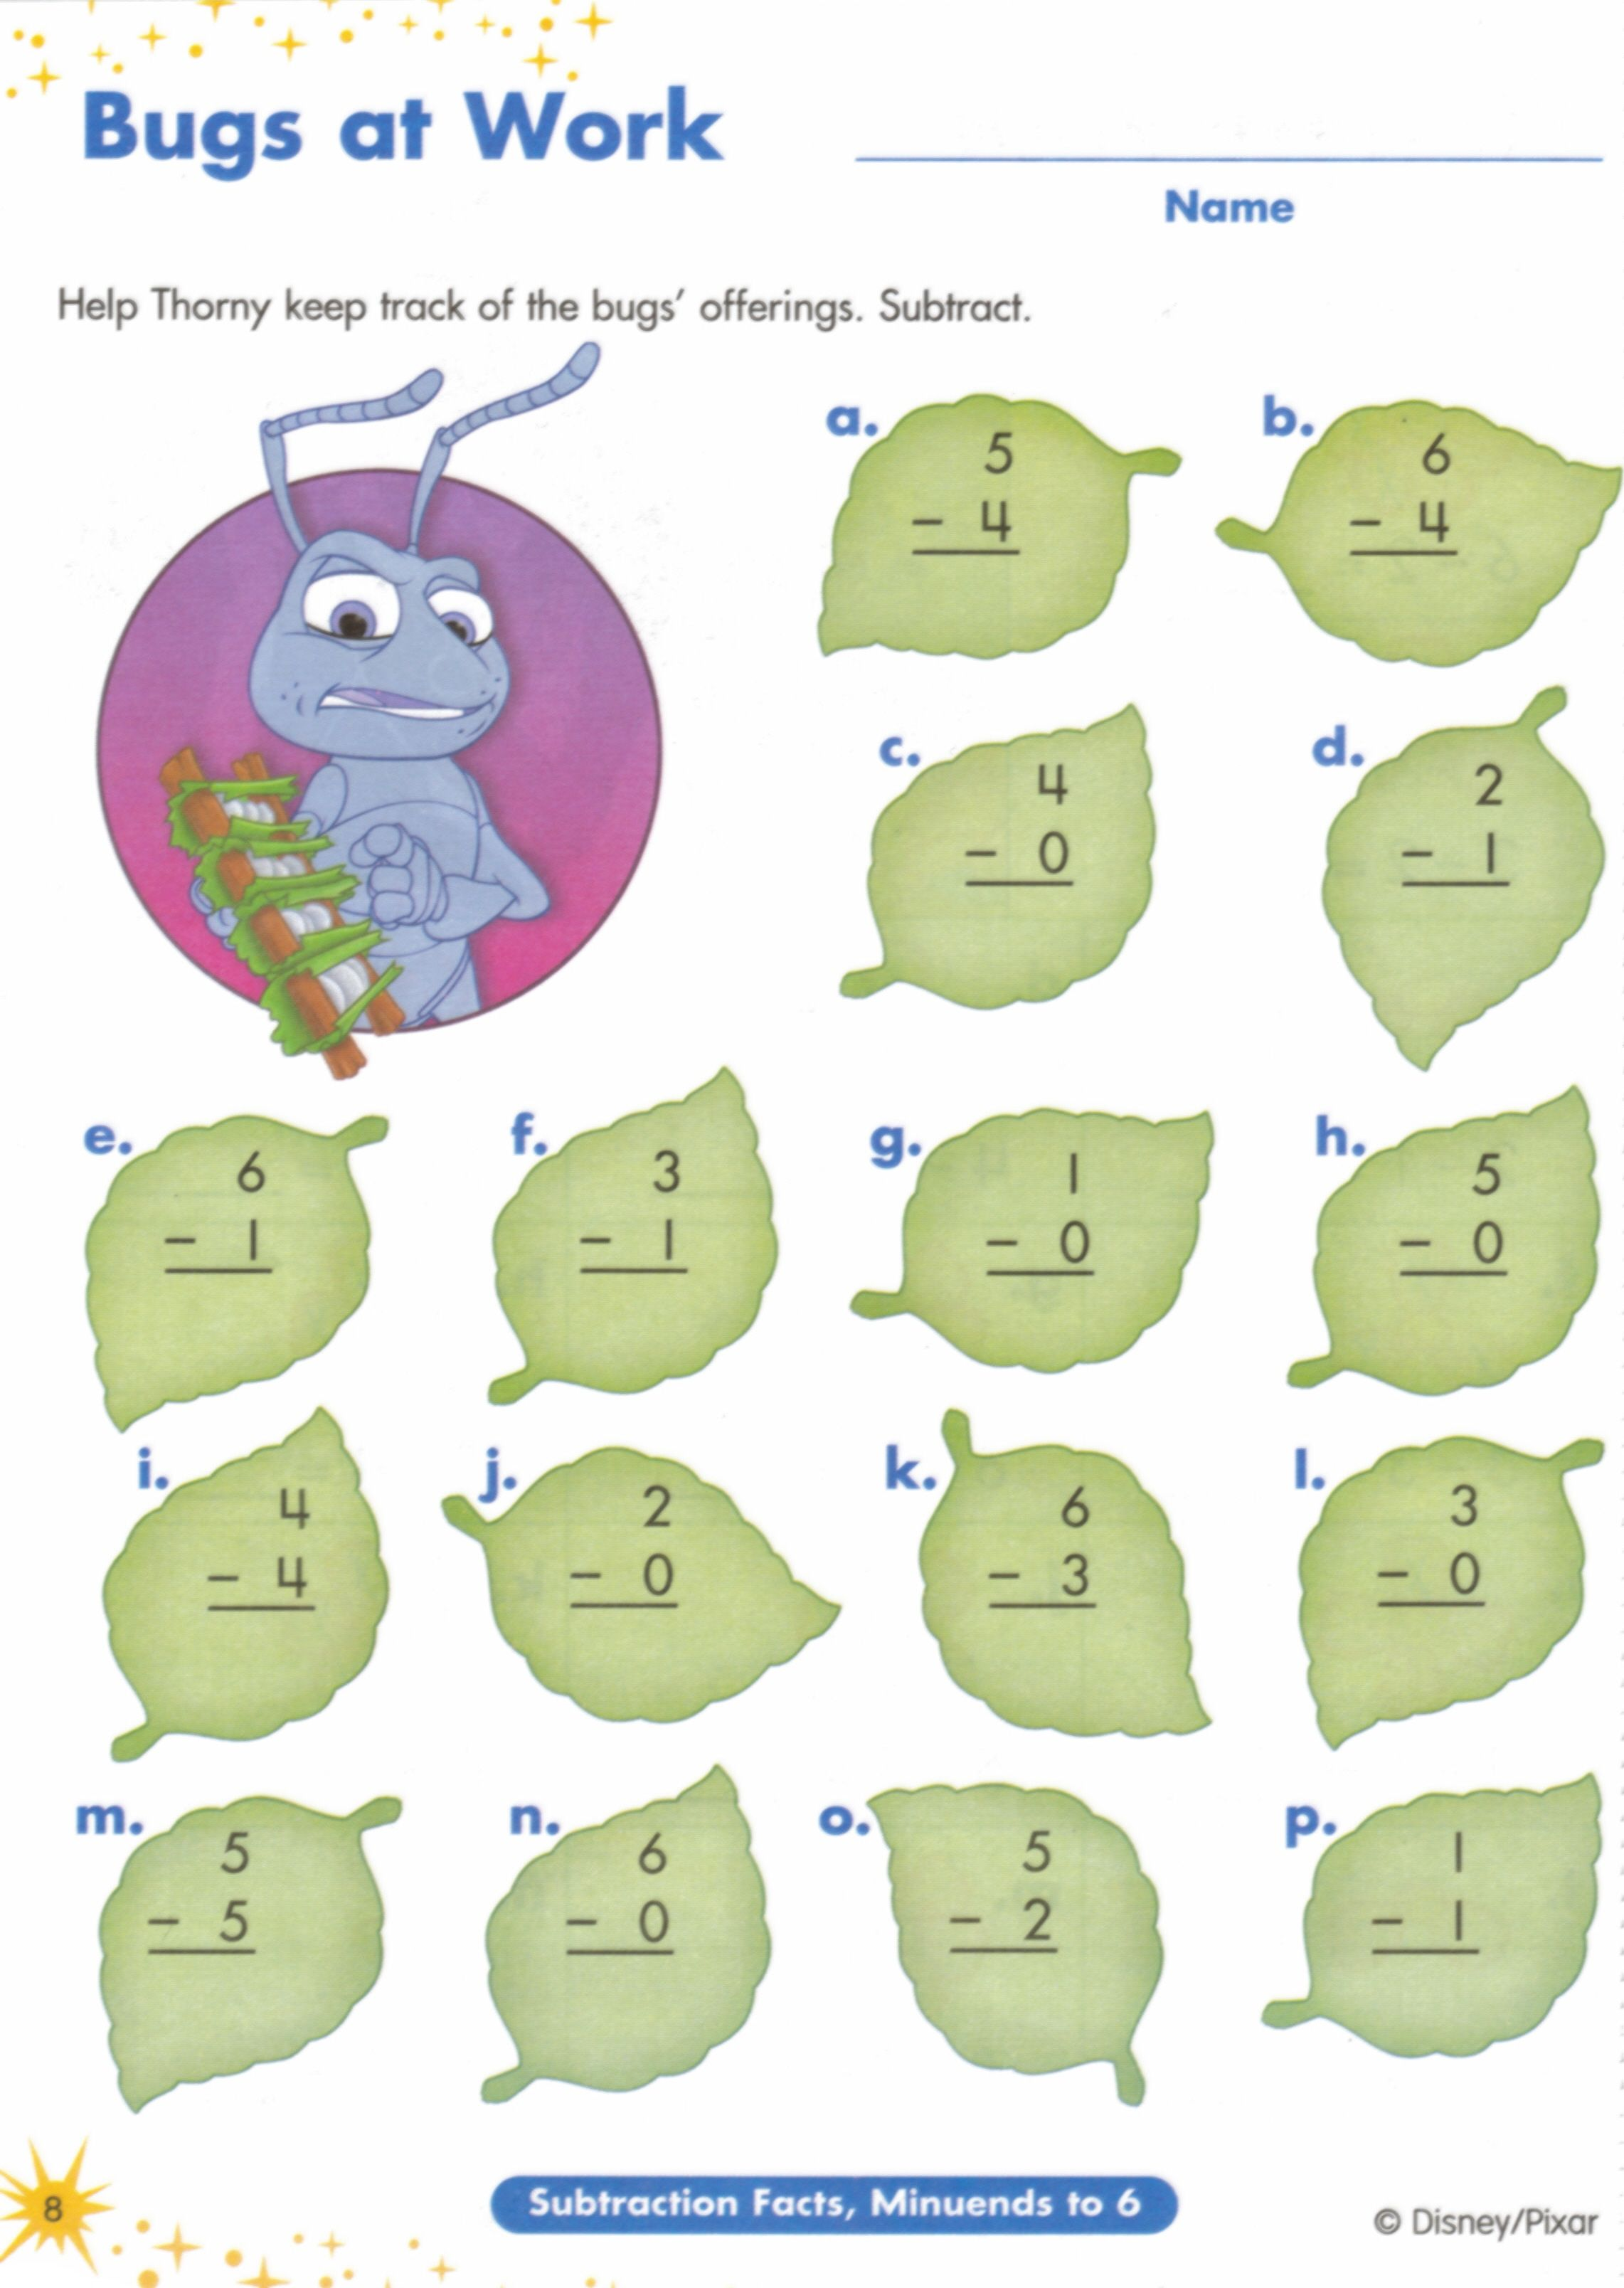 Proatmealus  Winsome  Images About Worksheets On Pinterest  Fun Facts For Kids  With Fetching  Images About Worksheets On Pinterest  Fun Facts For Kids Earth Day Worksheets And Jungles With Breathtaking Lowercase Letters Worksheets Also Worksheet On Histograms In Addition English For Esl Students Worksheets And English Fill In The Blanks Worksheets As Well As Free Grammar Worksheets For Grade  Additionally Punctuation Worksheets For Grade  From Pinterestcom With Proatmealus  Fetching  Images About Worksheets On Pinterest  Fun Facts For Kids  With Breathtaking  Images About Worksheets On Pinterest  Fun Facts For Kids Earth Day Worksheets And Jungles And Winsome Lowercase Letters Worksheets Also Worksheet On Histograms In Addition English For Esl Students Worksheets From Pinterestcom